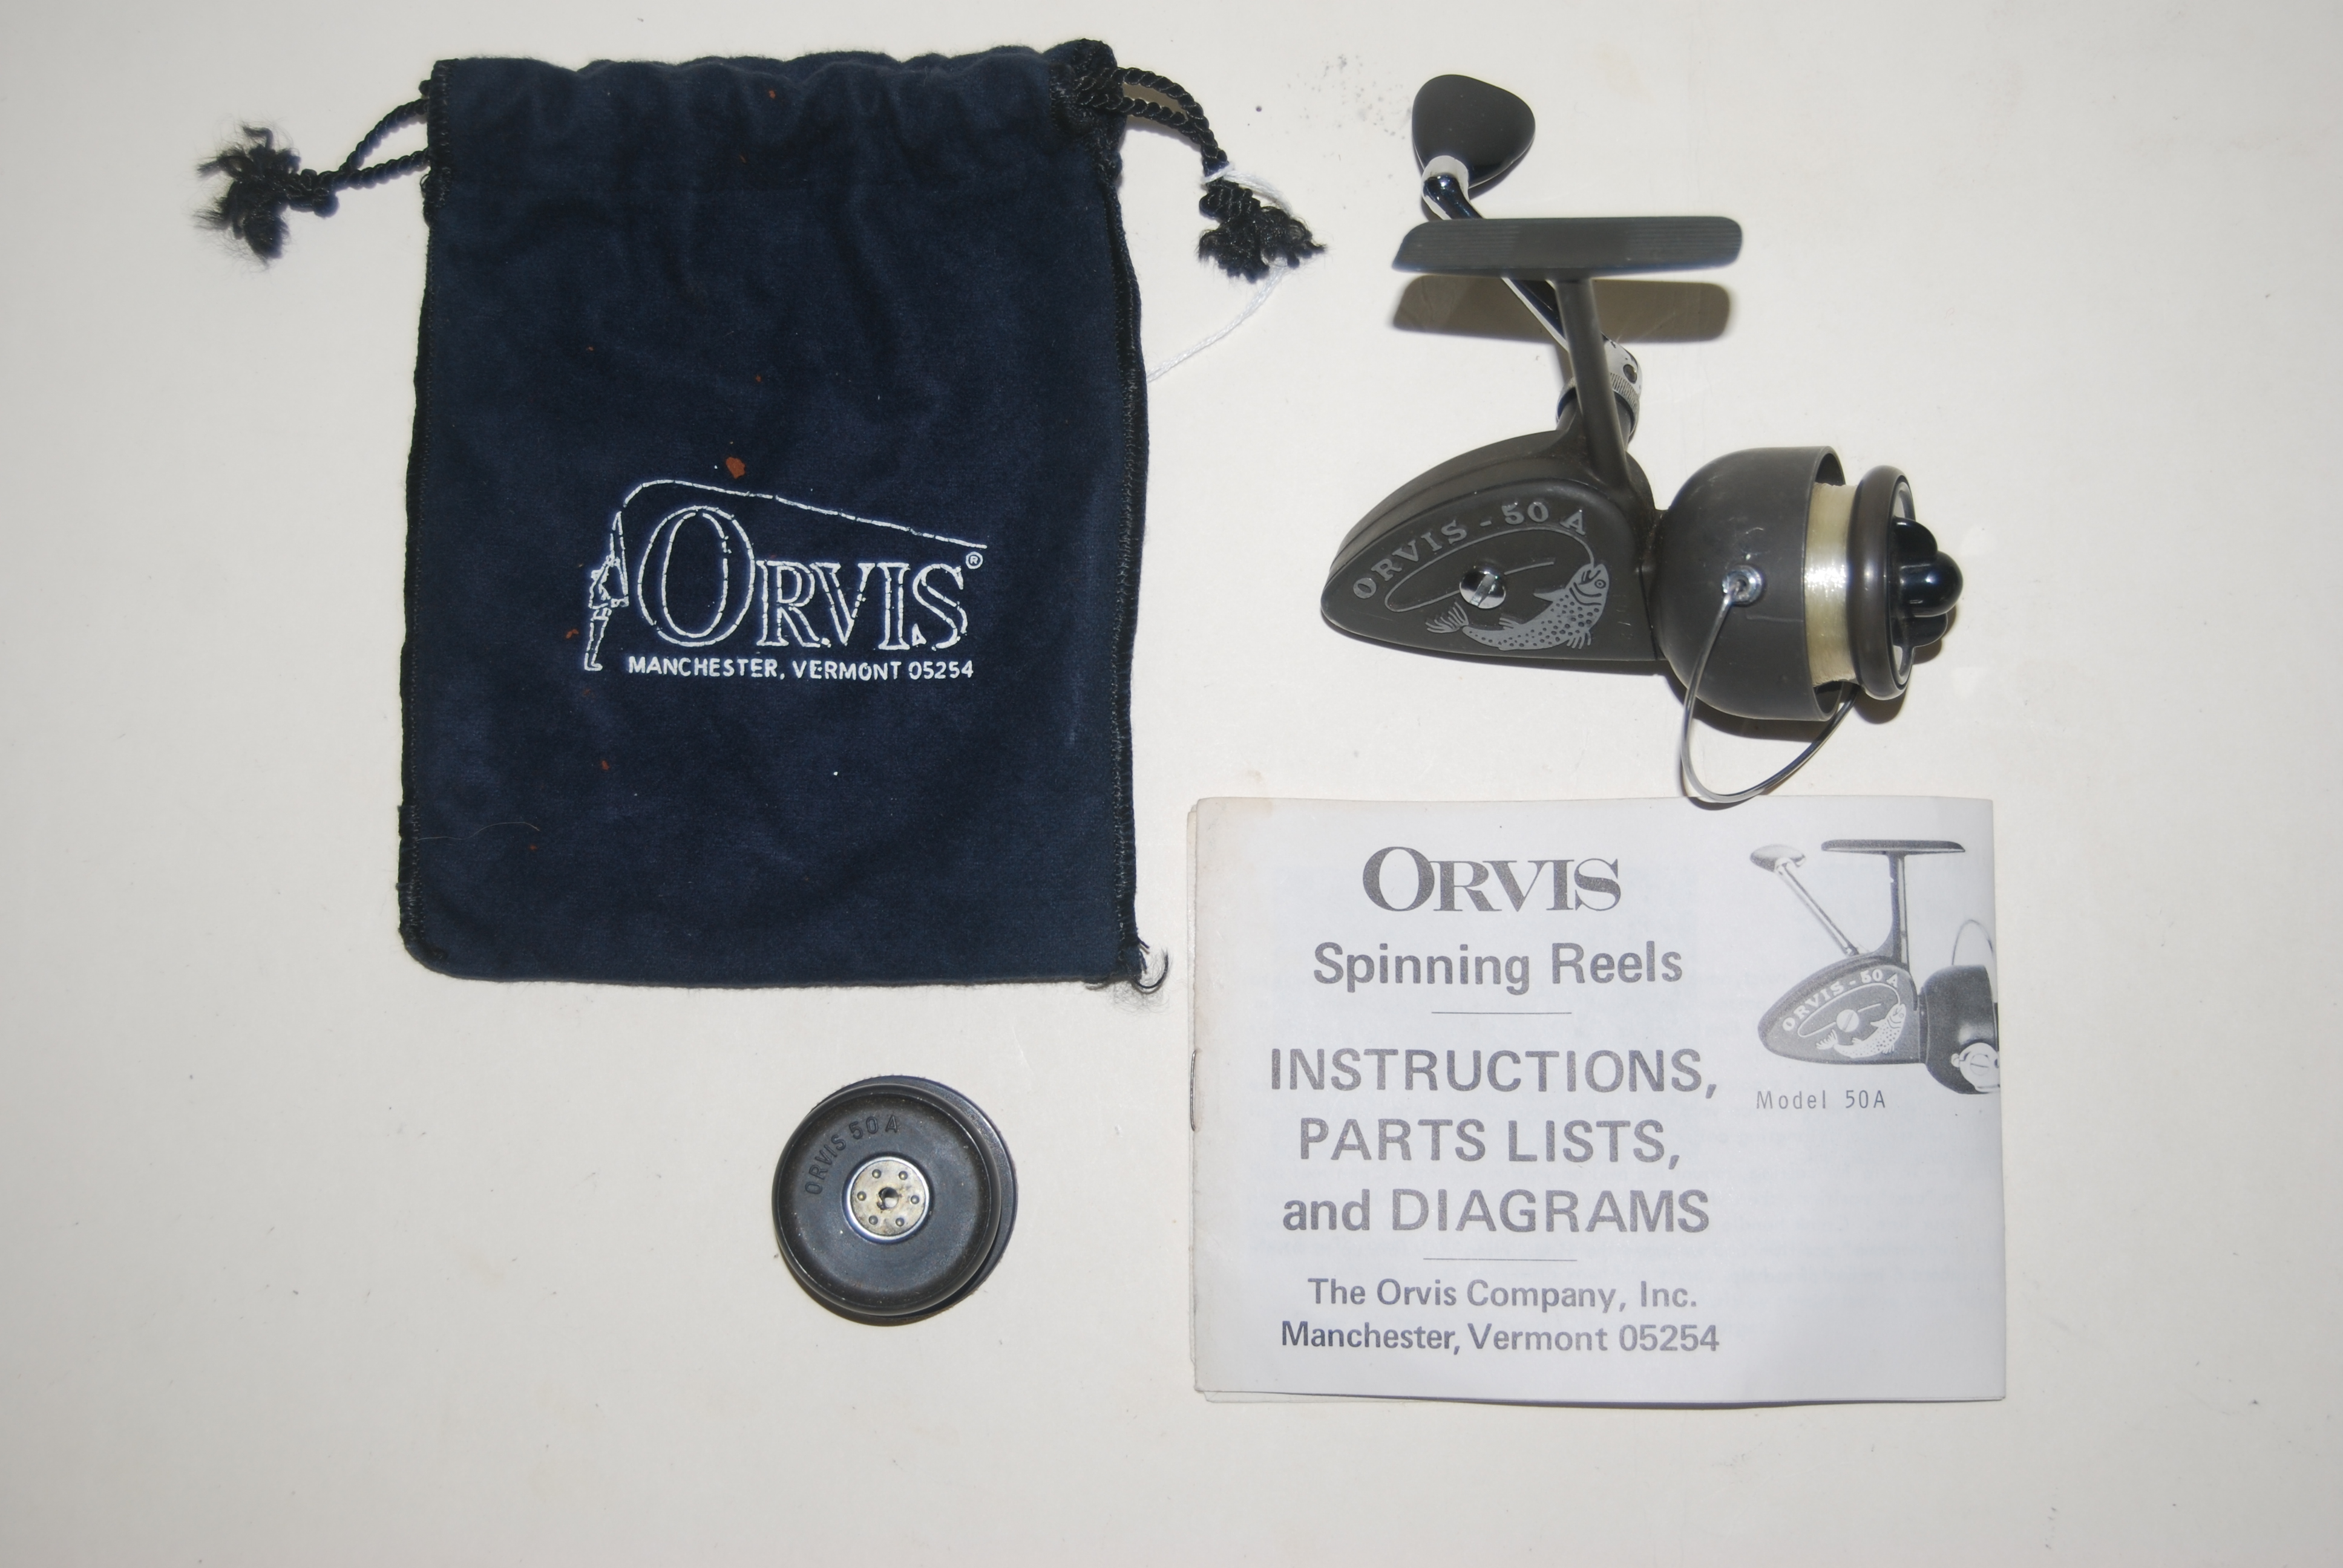 Image for ORVIS 50A ULTRA-LITE SPIN REEL + EXTRA SPOOL + INSTRUCTION SHEET.  6 ½ oz. Extra Fast 5:1 retrieve ratio [22 ¼ in. per turn of handle] Capacity 160 yd. 2# or 130yd. 6#. Circa 1967.